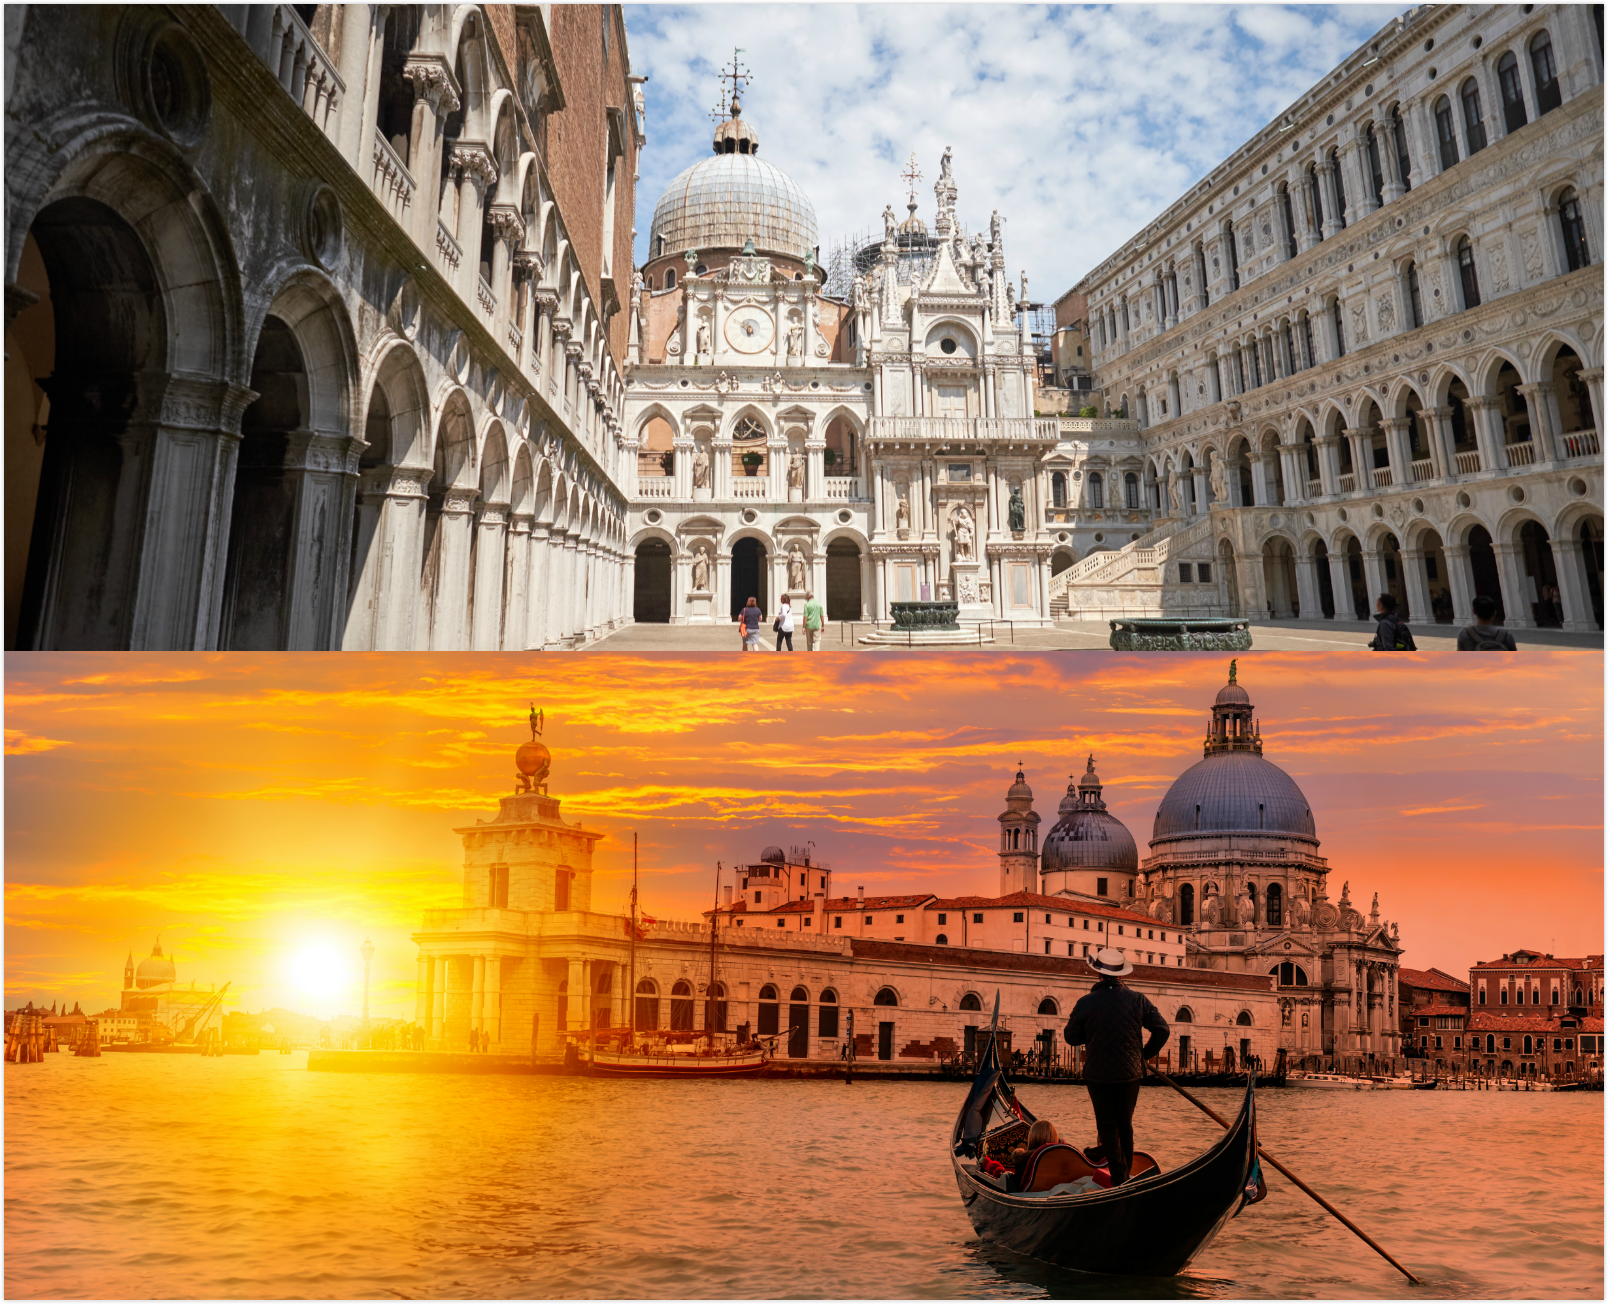 Tickets for Doge's Palace & Gondola Ride: Skip The Line